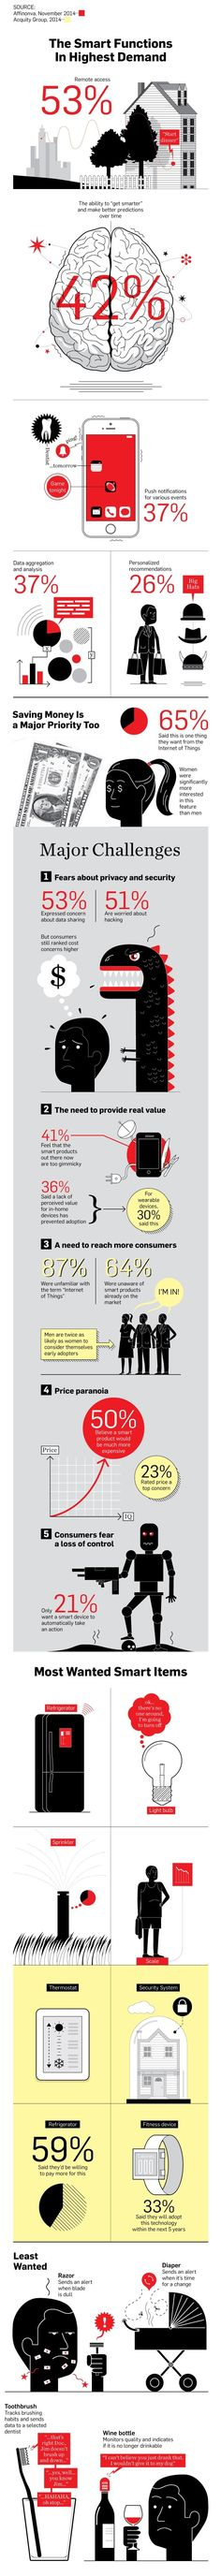 Infographic: Why Consumers Have Failed to Adopt the Internet of Things | Adweek